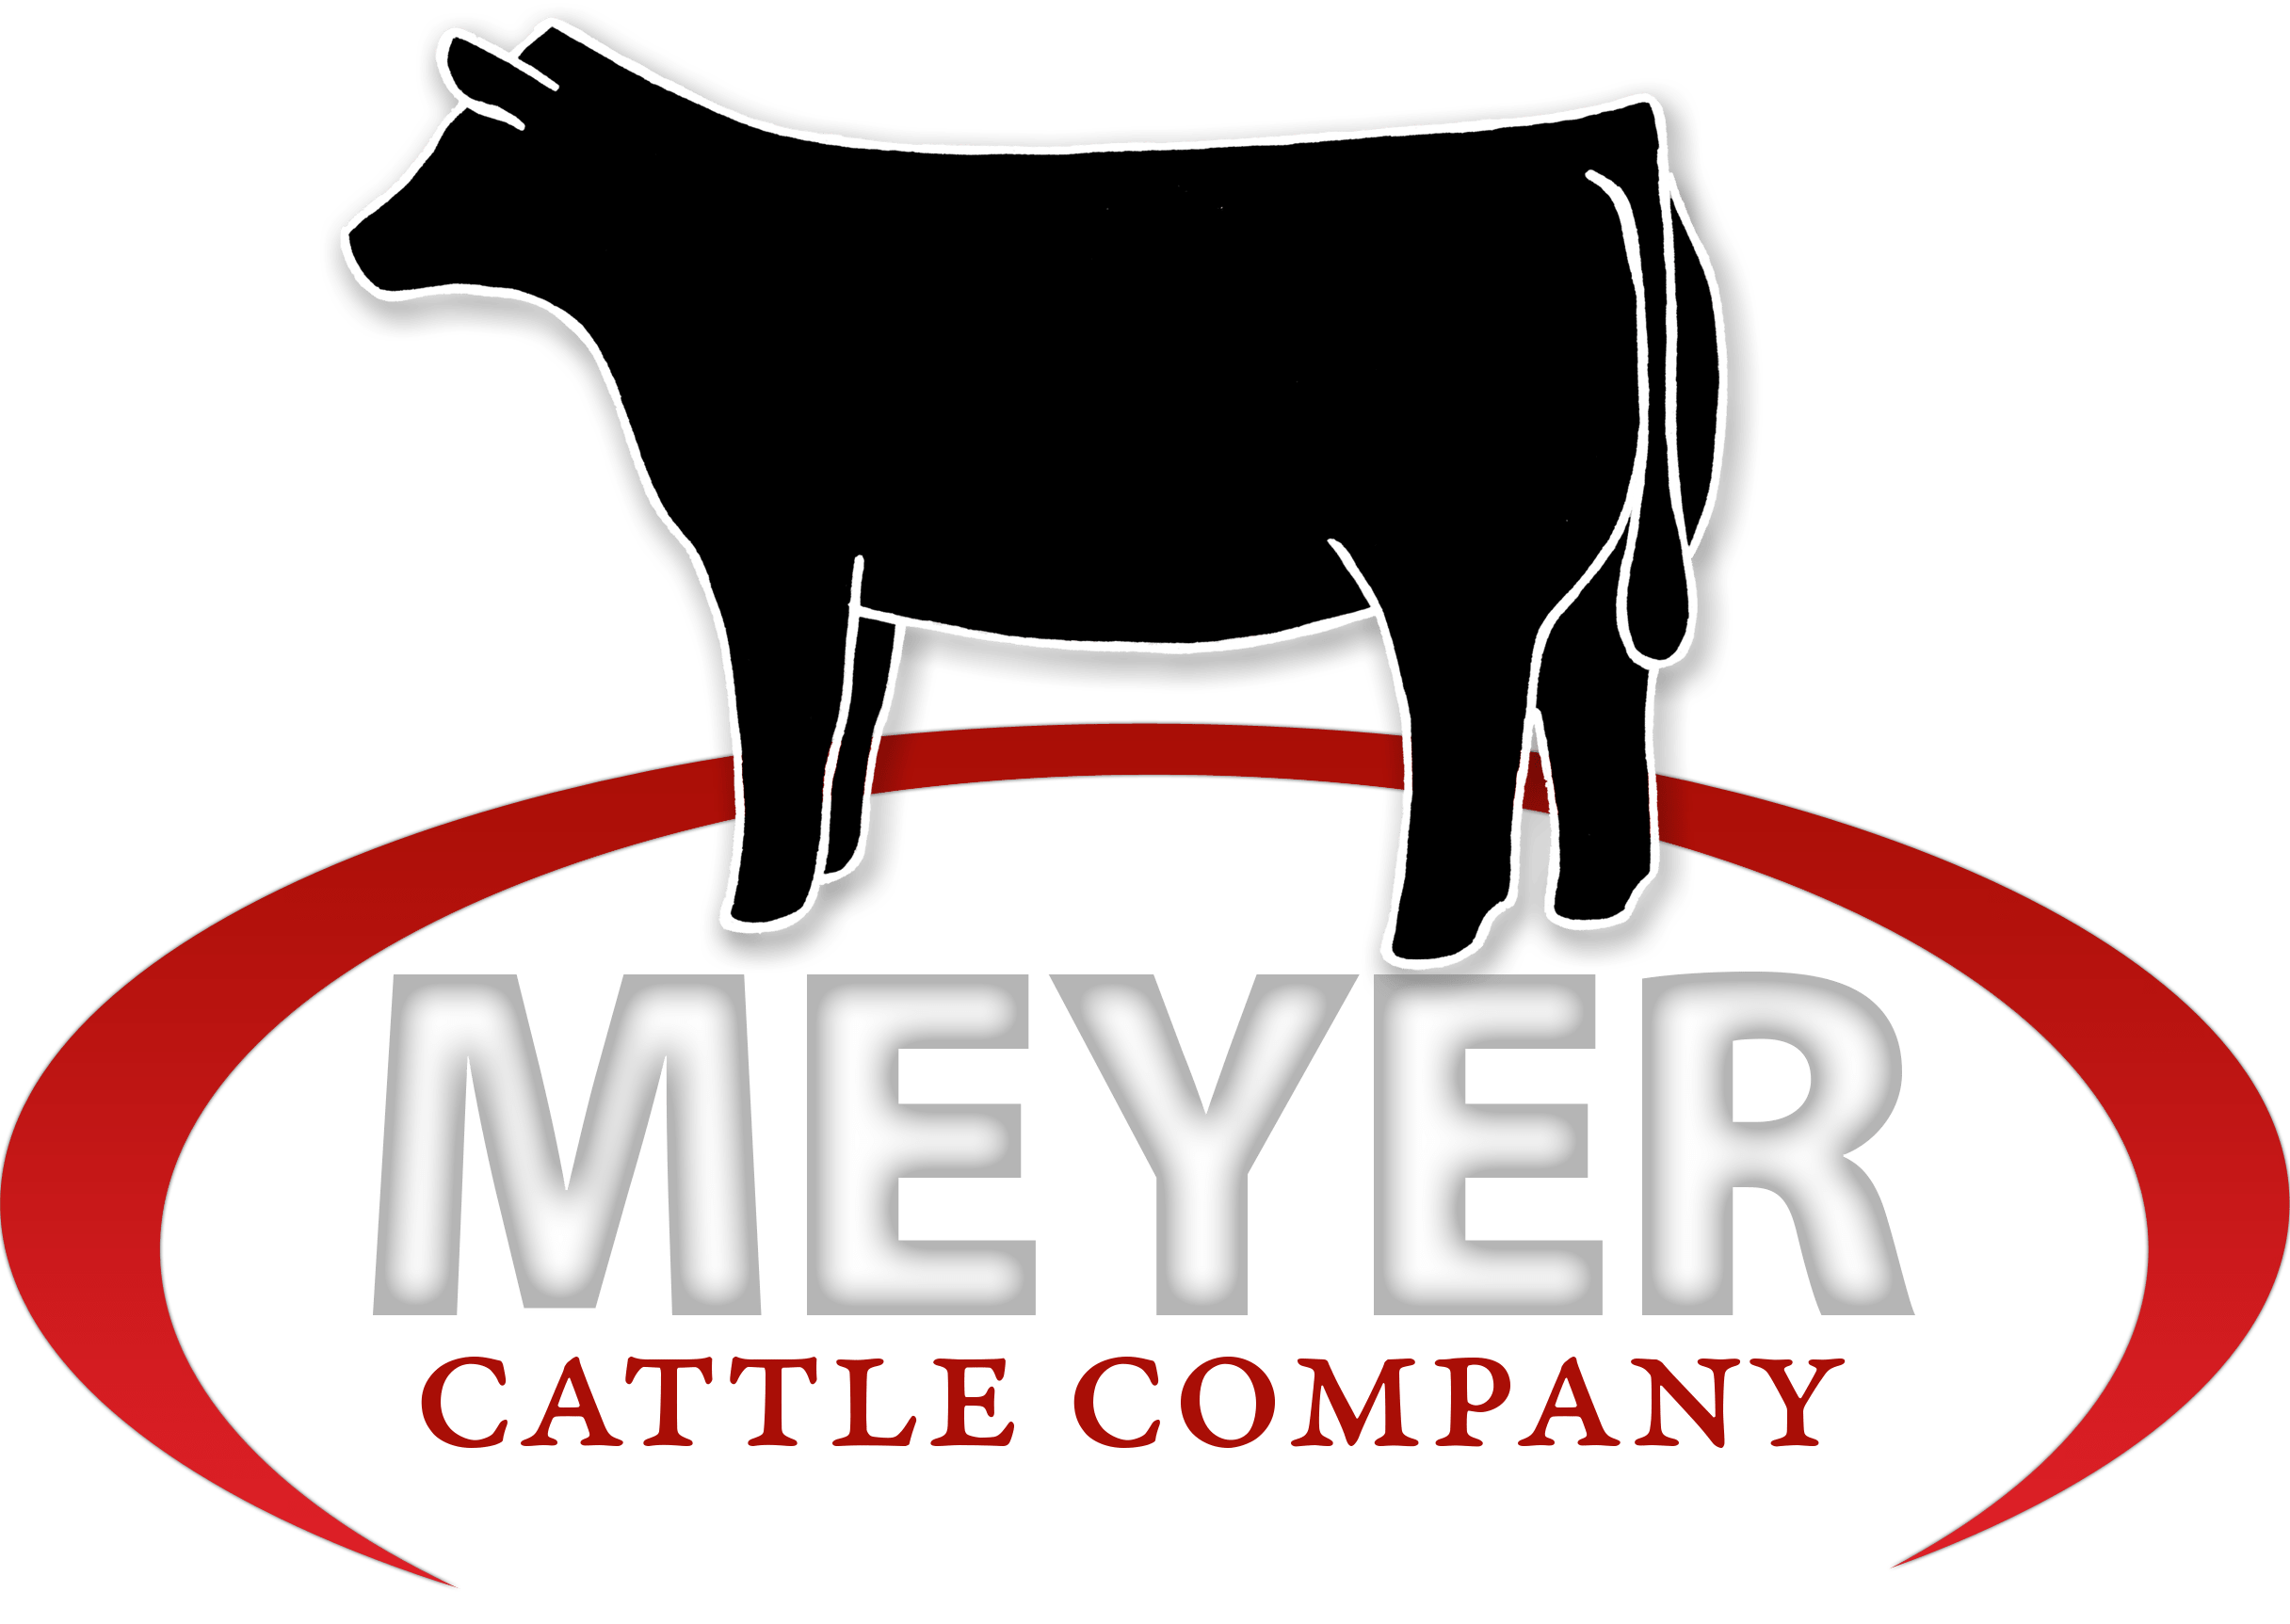 Farmers clipart cattle farming. Meyer angus bred for